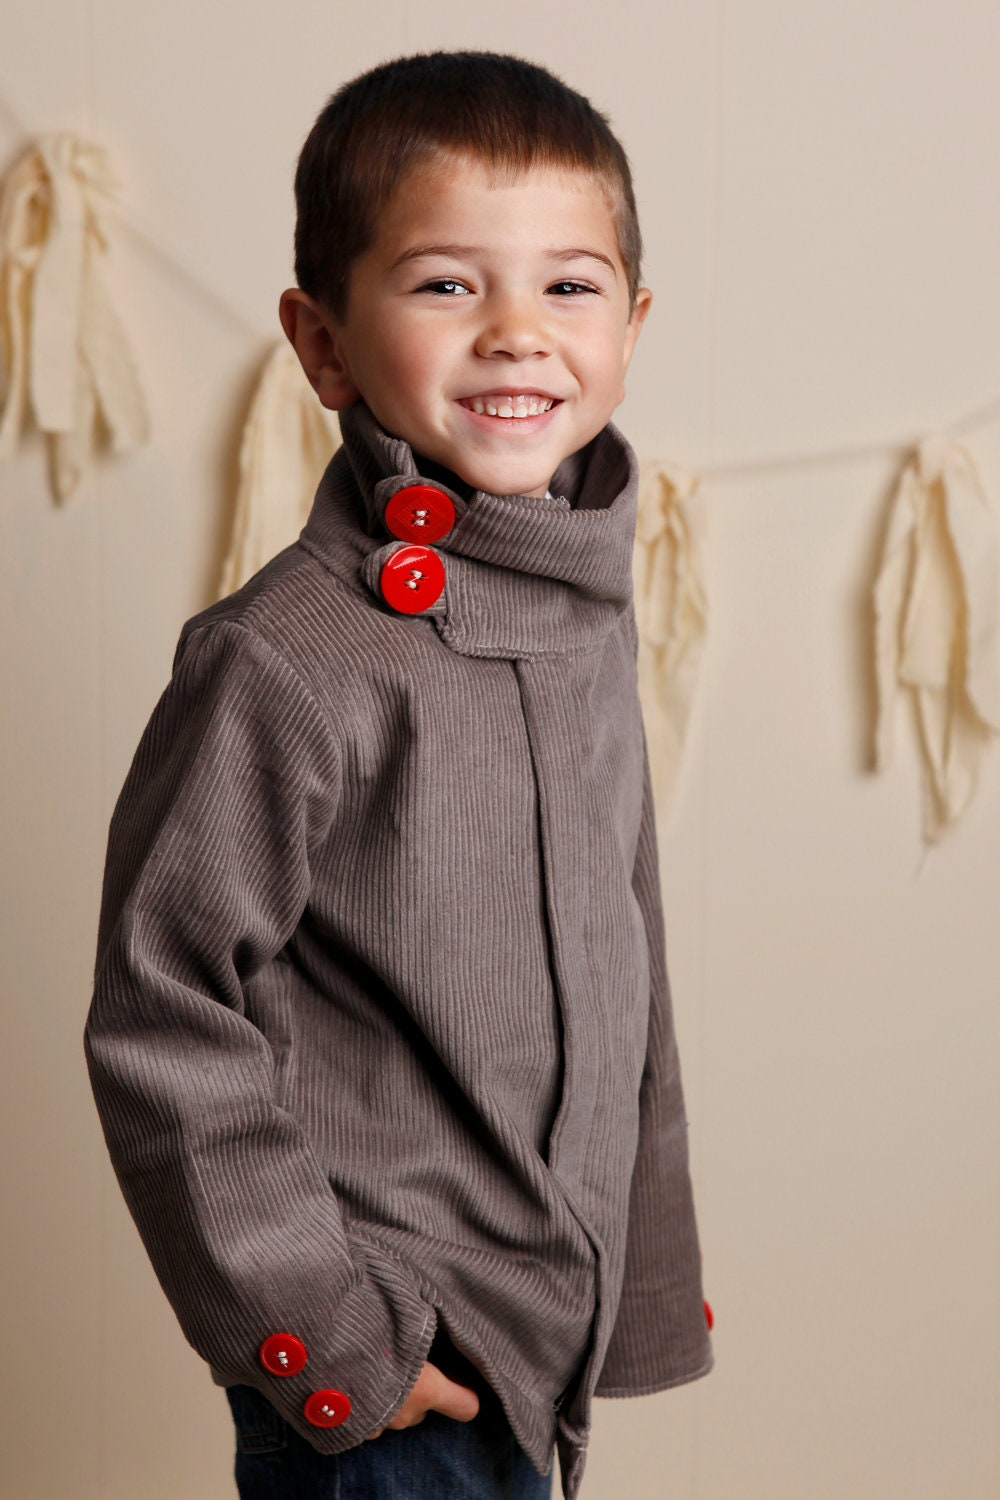 Fall Winter 2012-Little Boy Urban Style Gray Corduroy Weekender Jacket/Coat-Fully Lined with a Zipper 12m, 18m, 2T, 3T, 4T, 5T - babesnbeads